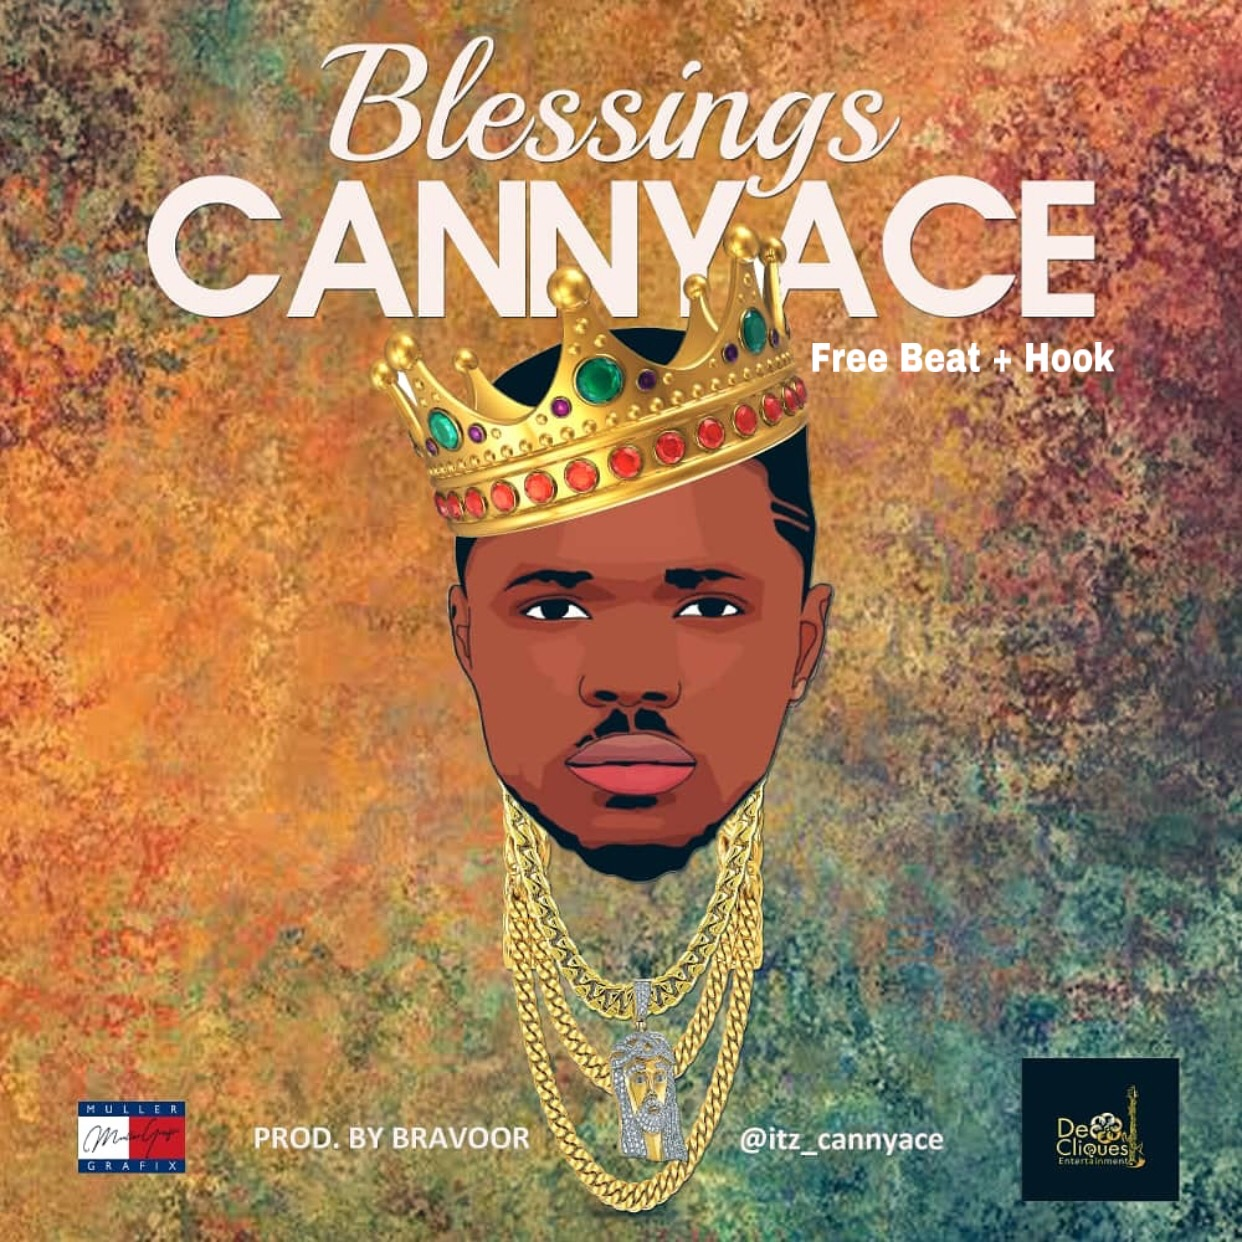 Freebeat + Hook: CannyAce- Blessings